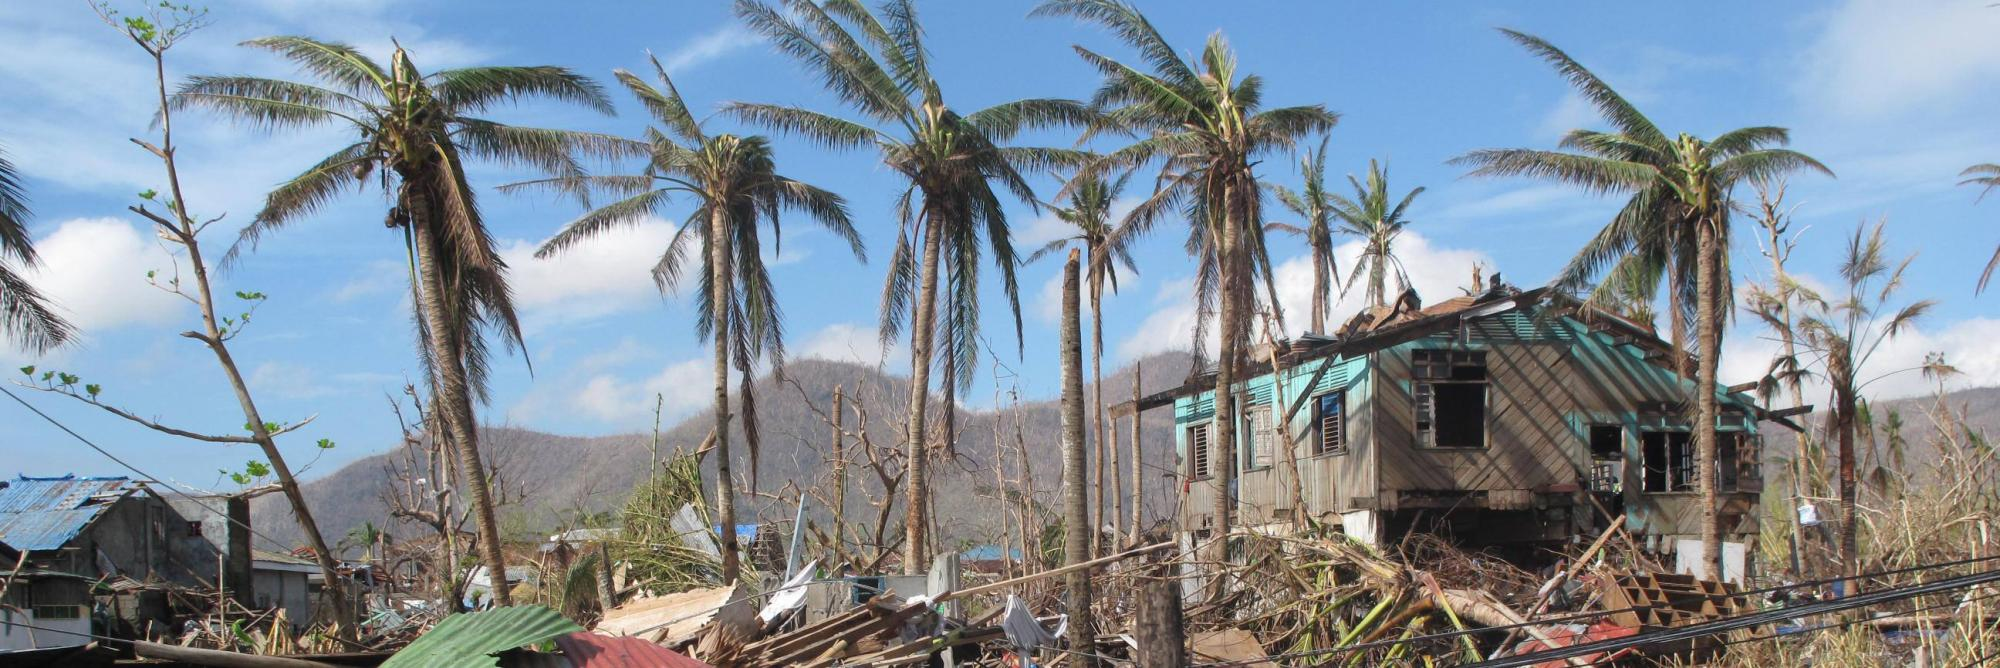 A few palm trees stand near destroyed homes amid the destruction caused by Typhoon Haiyan in 2013 in the city of Tacloban, Philippines